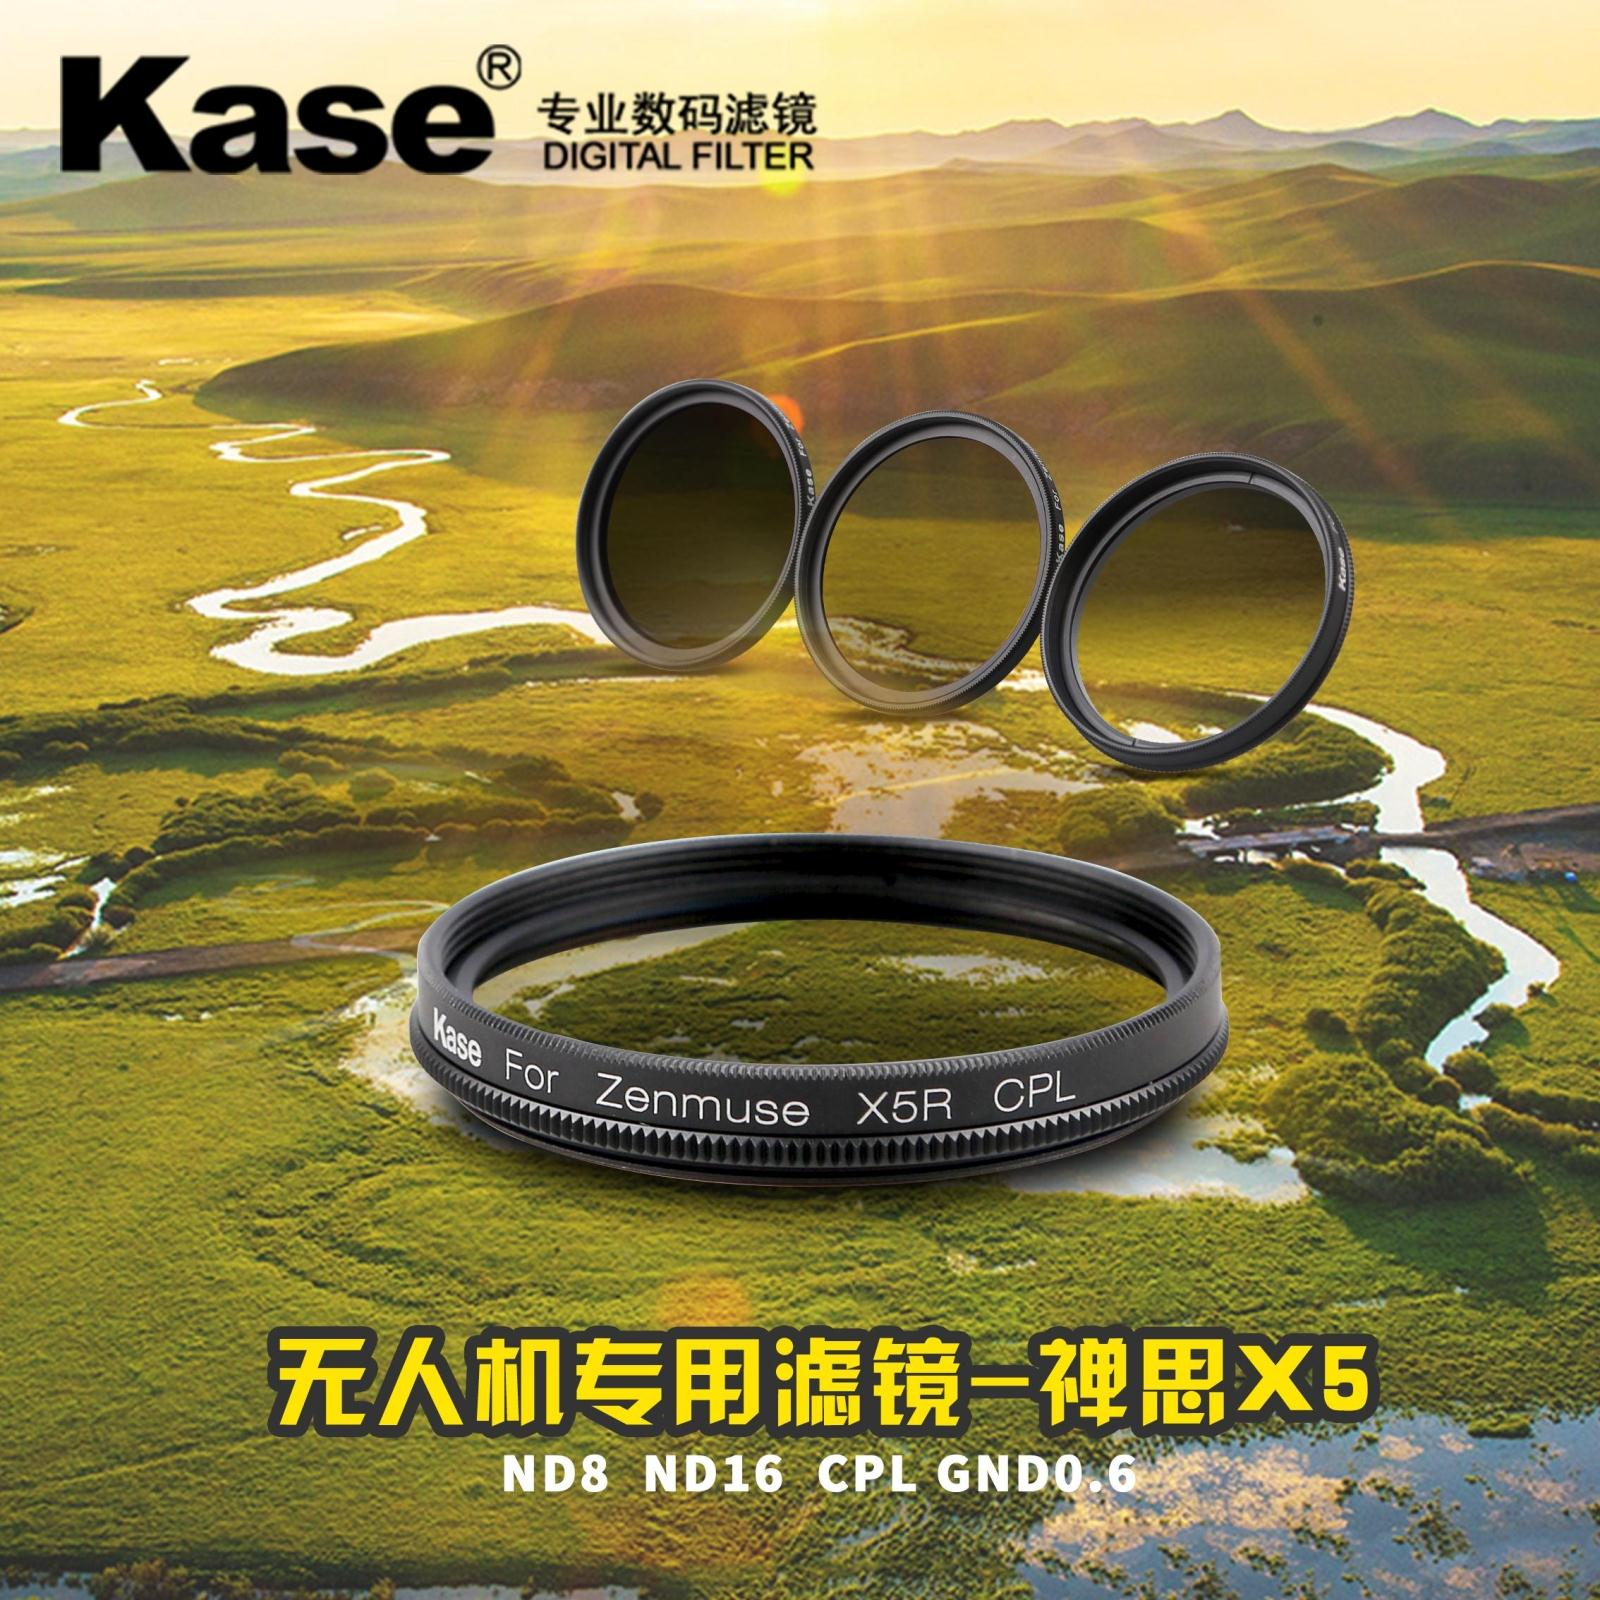 Kase card color filter uav dajiang zen x5 x5r gradient lens by light microscopy polarizer